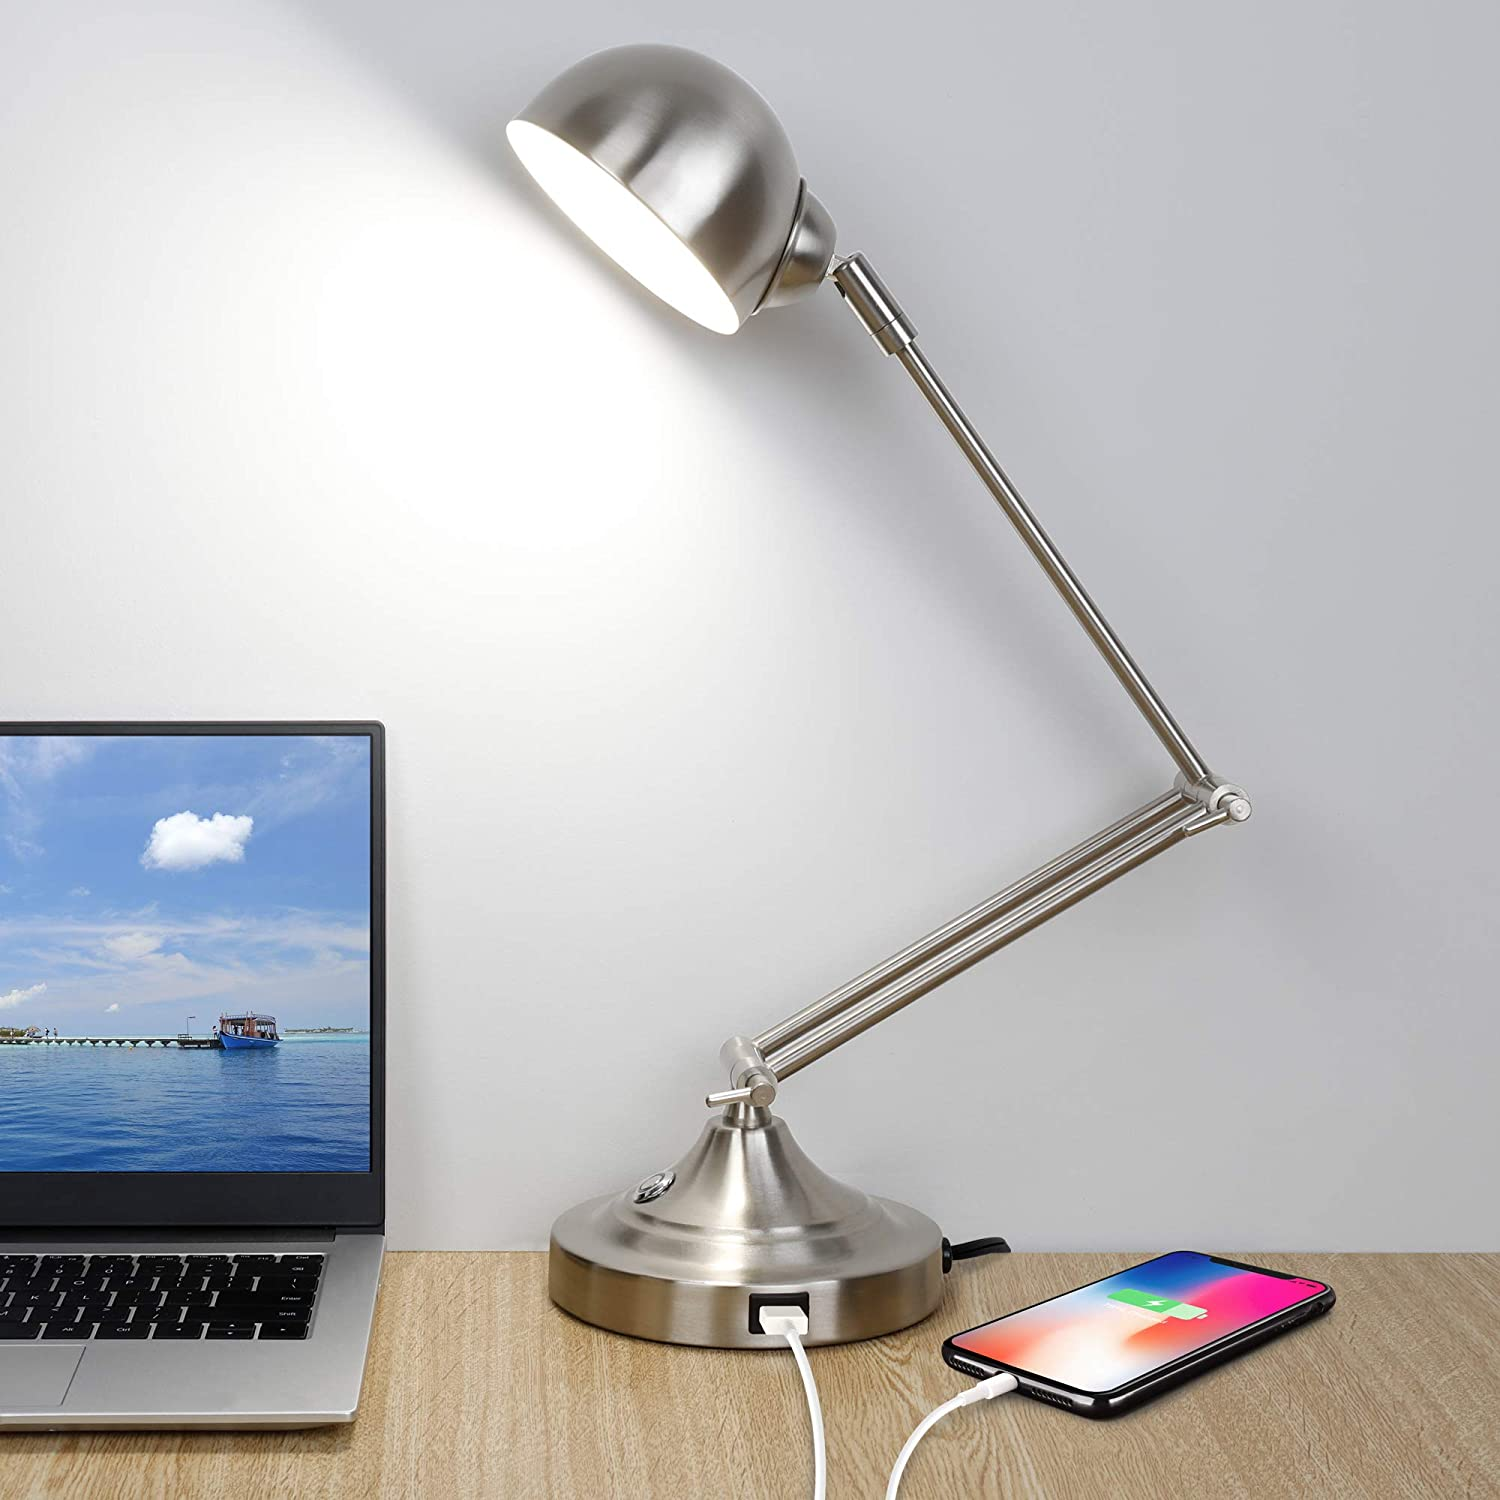 Silver lamp with bent neck sitting on a desk with a phone plugged in